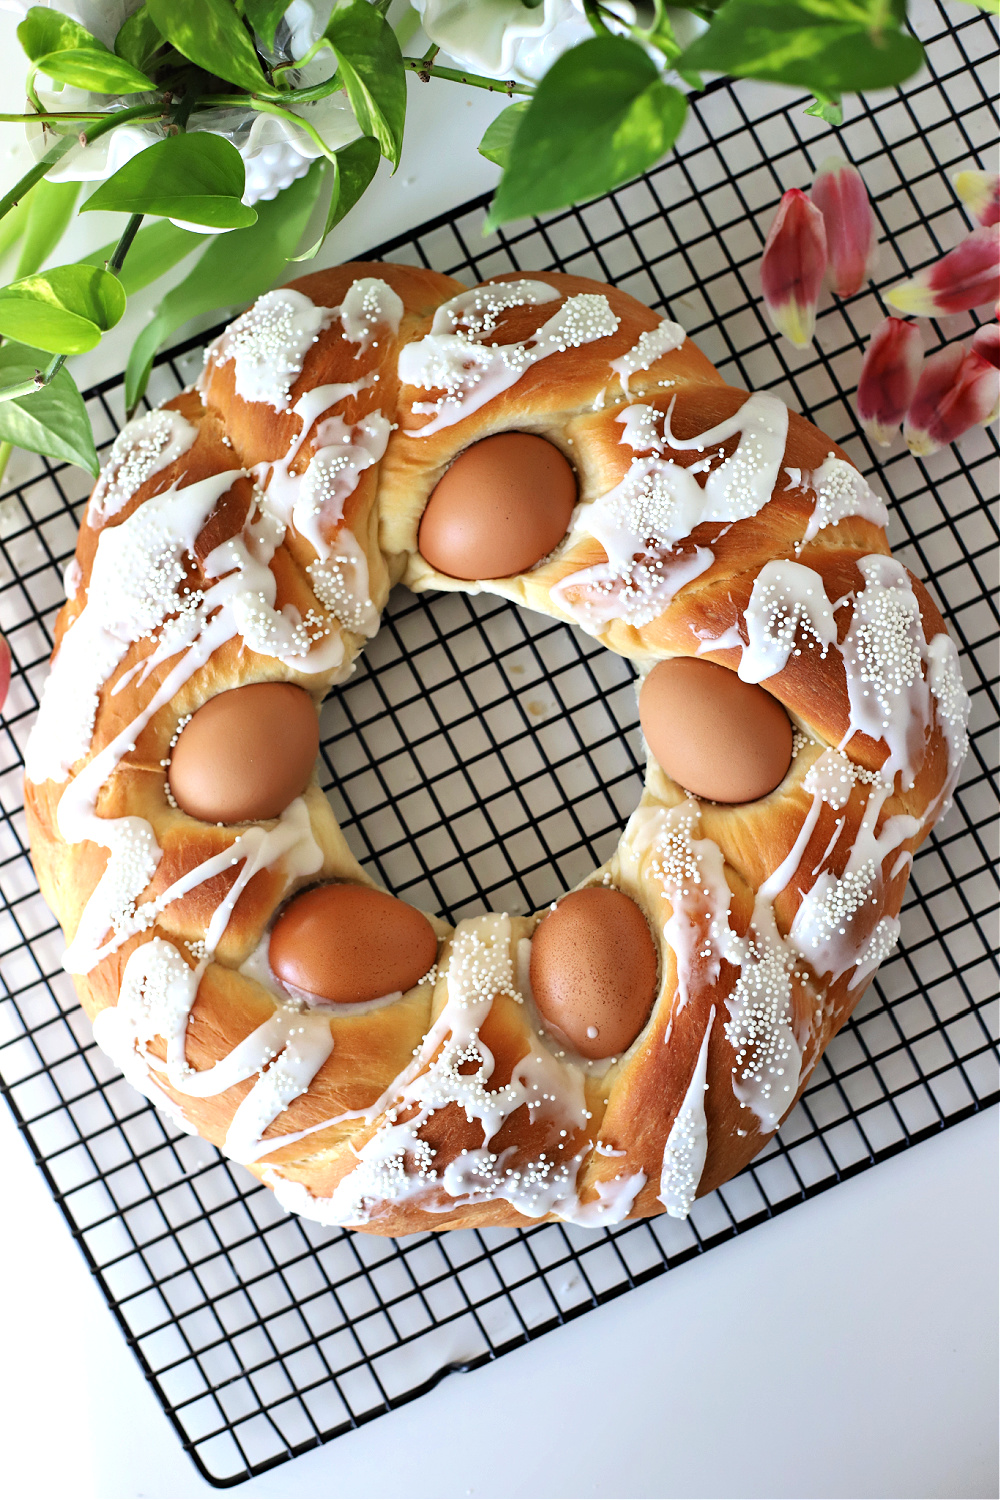 Using natural or dyed eggs you can make a beautiful sweet Easter bread. It is so easy especially when you let a bread machine do most of the work making the dough. An easy recipe for a lovely holiday breakfast.